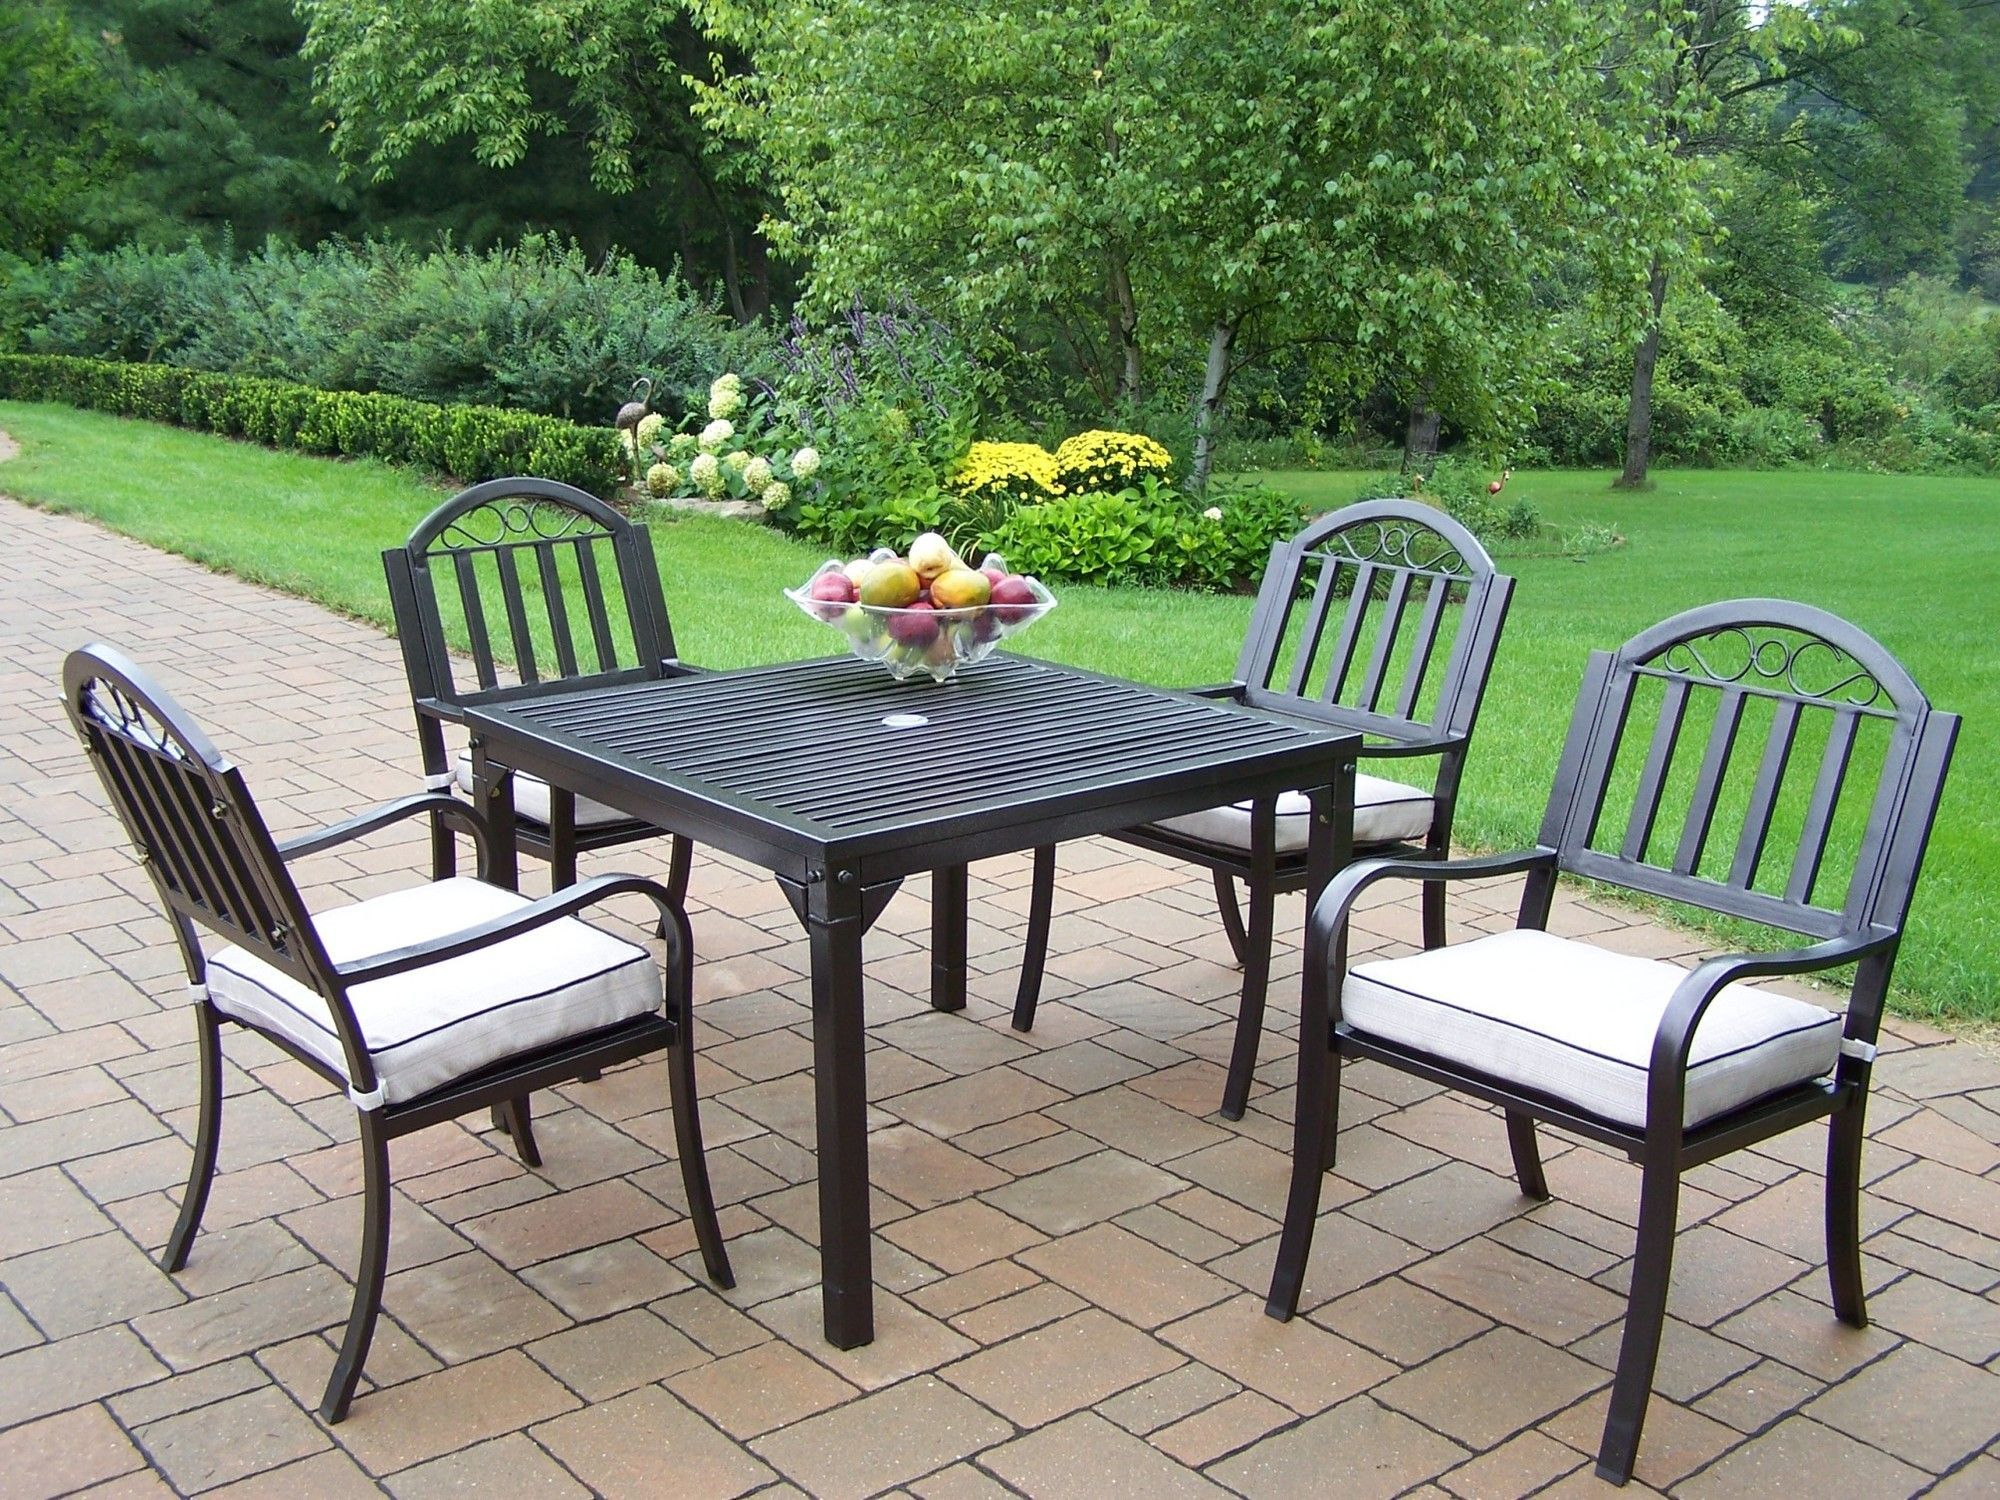 Tuin Dining Sets : Rochester dining set with cushions products